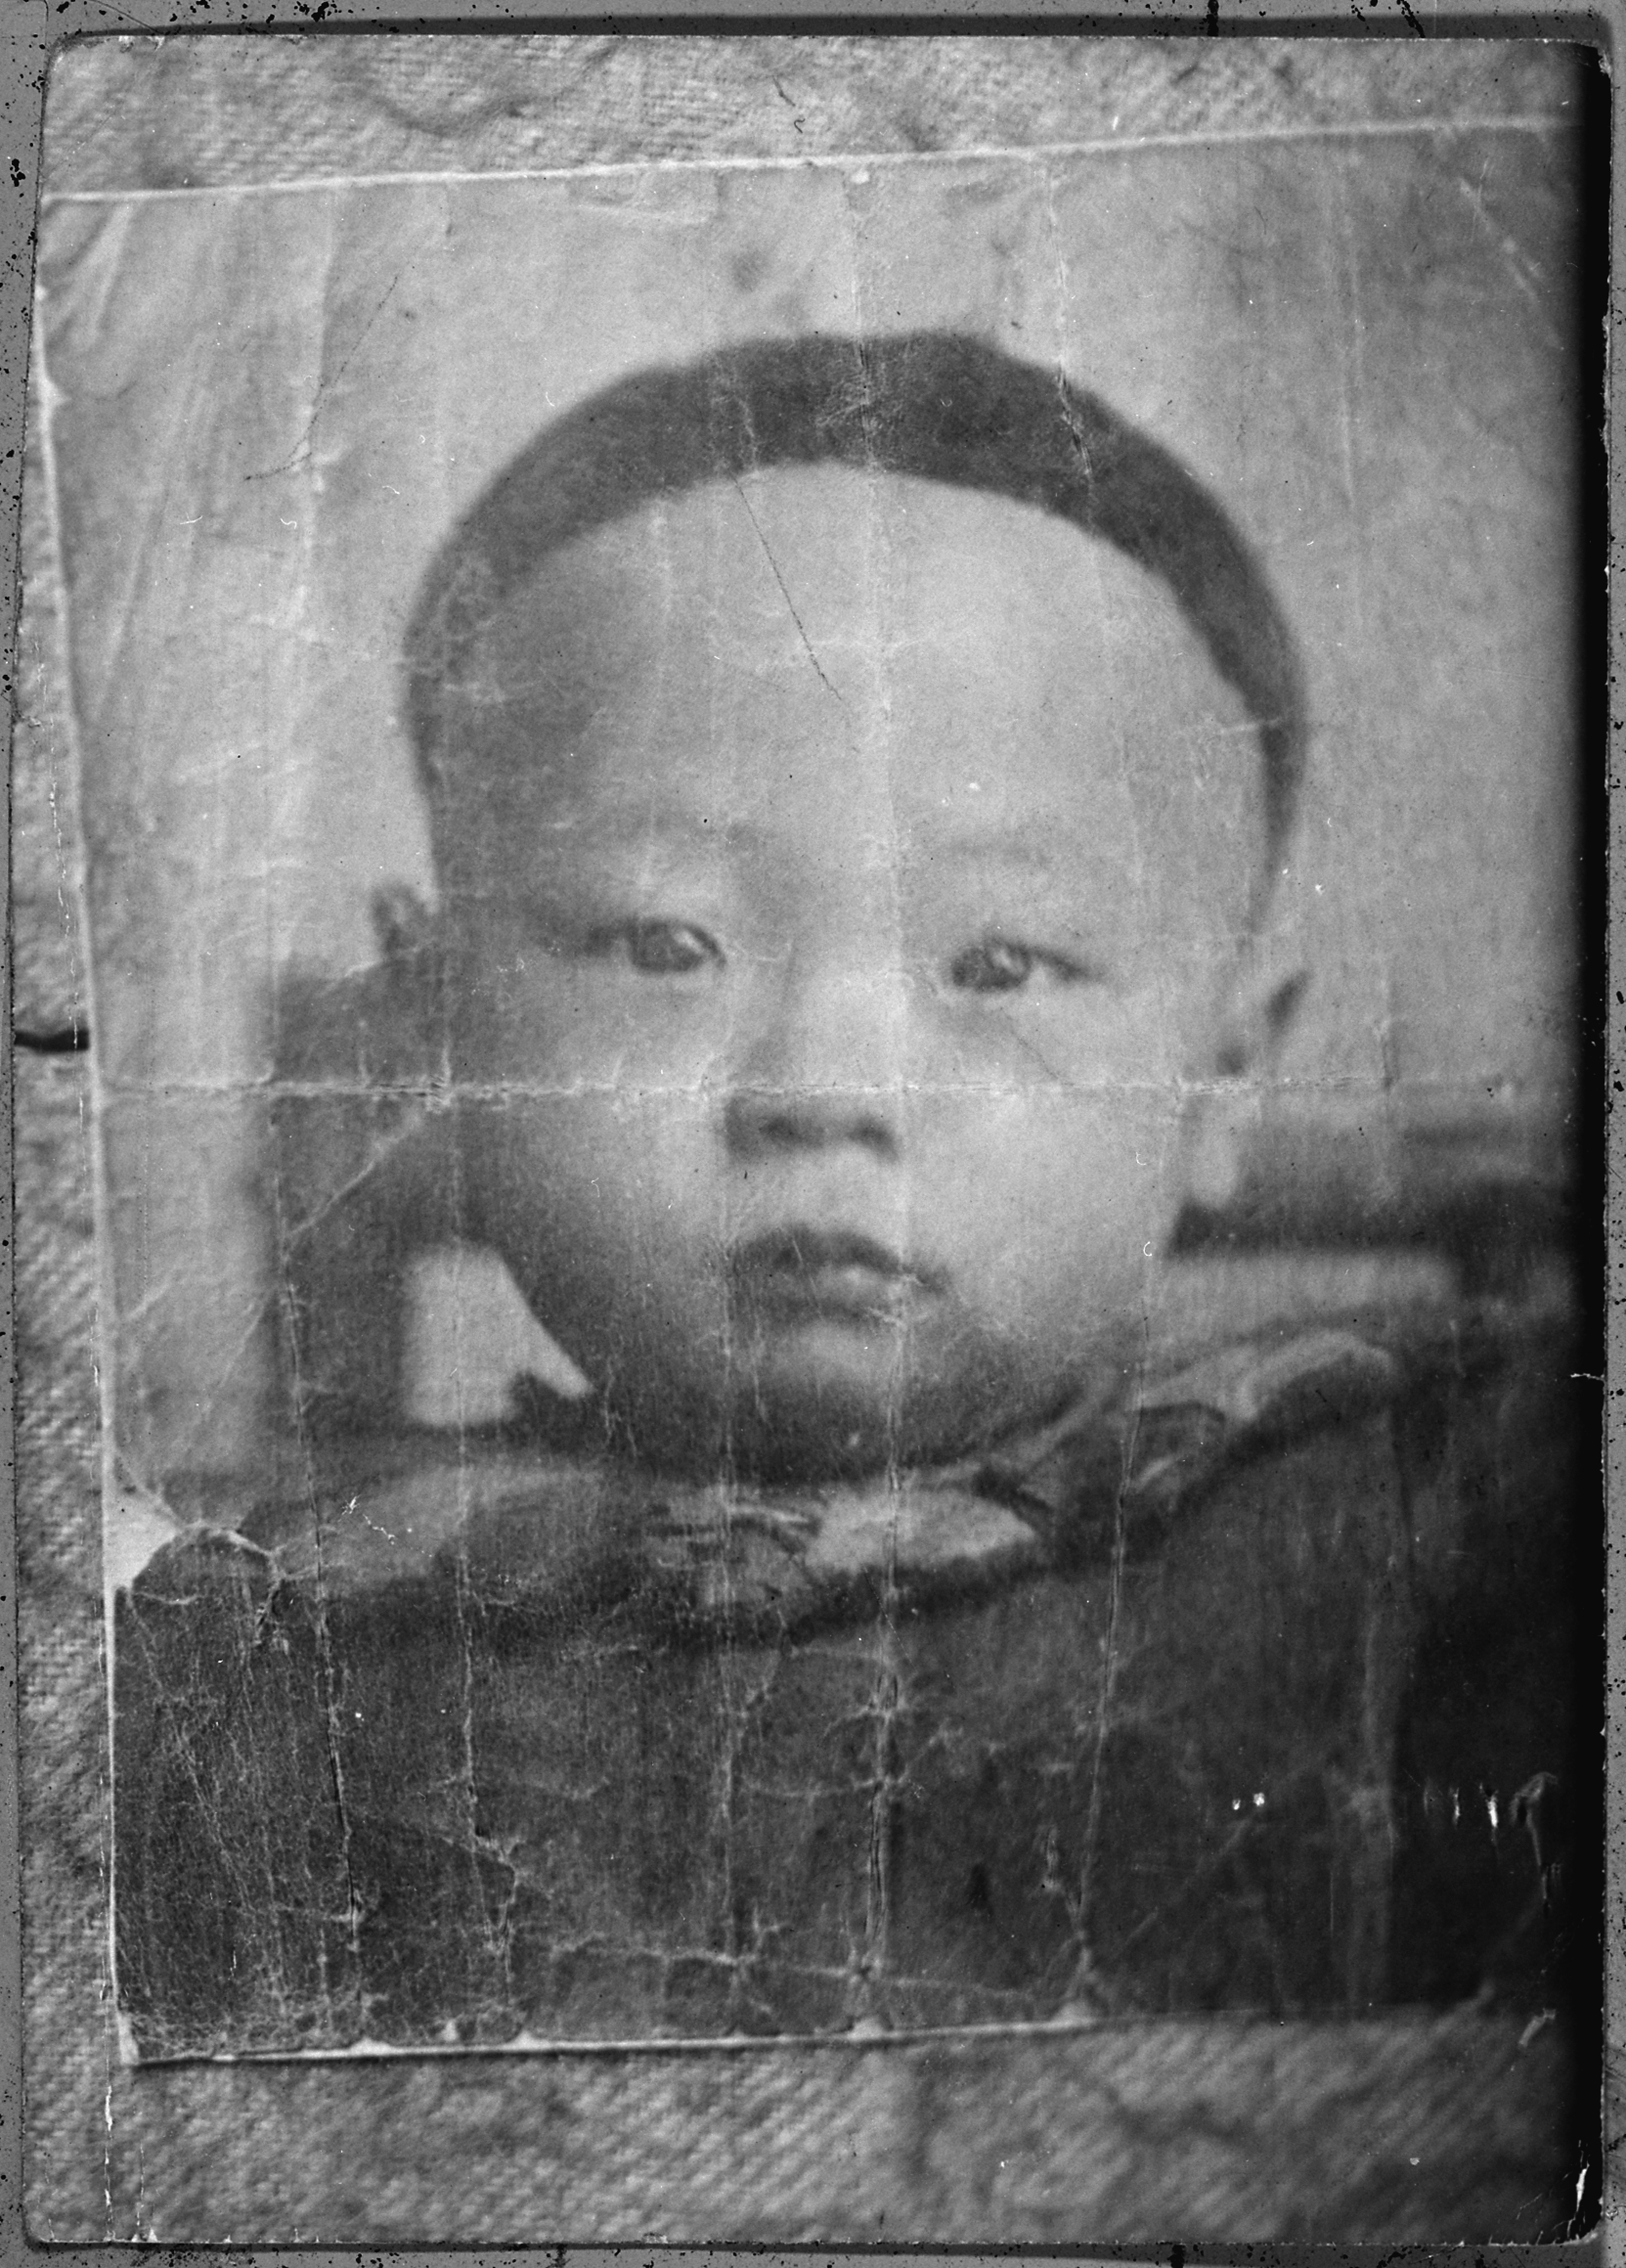 File:Photograph of Chun Jan Yut,